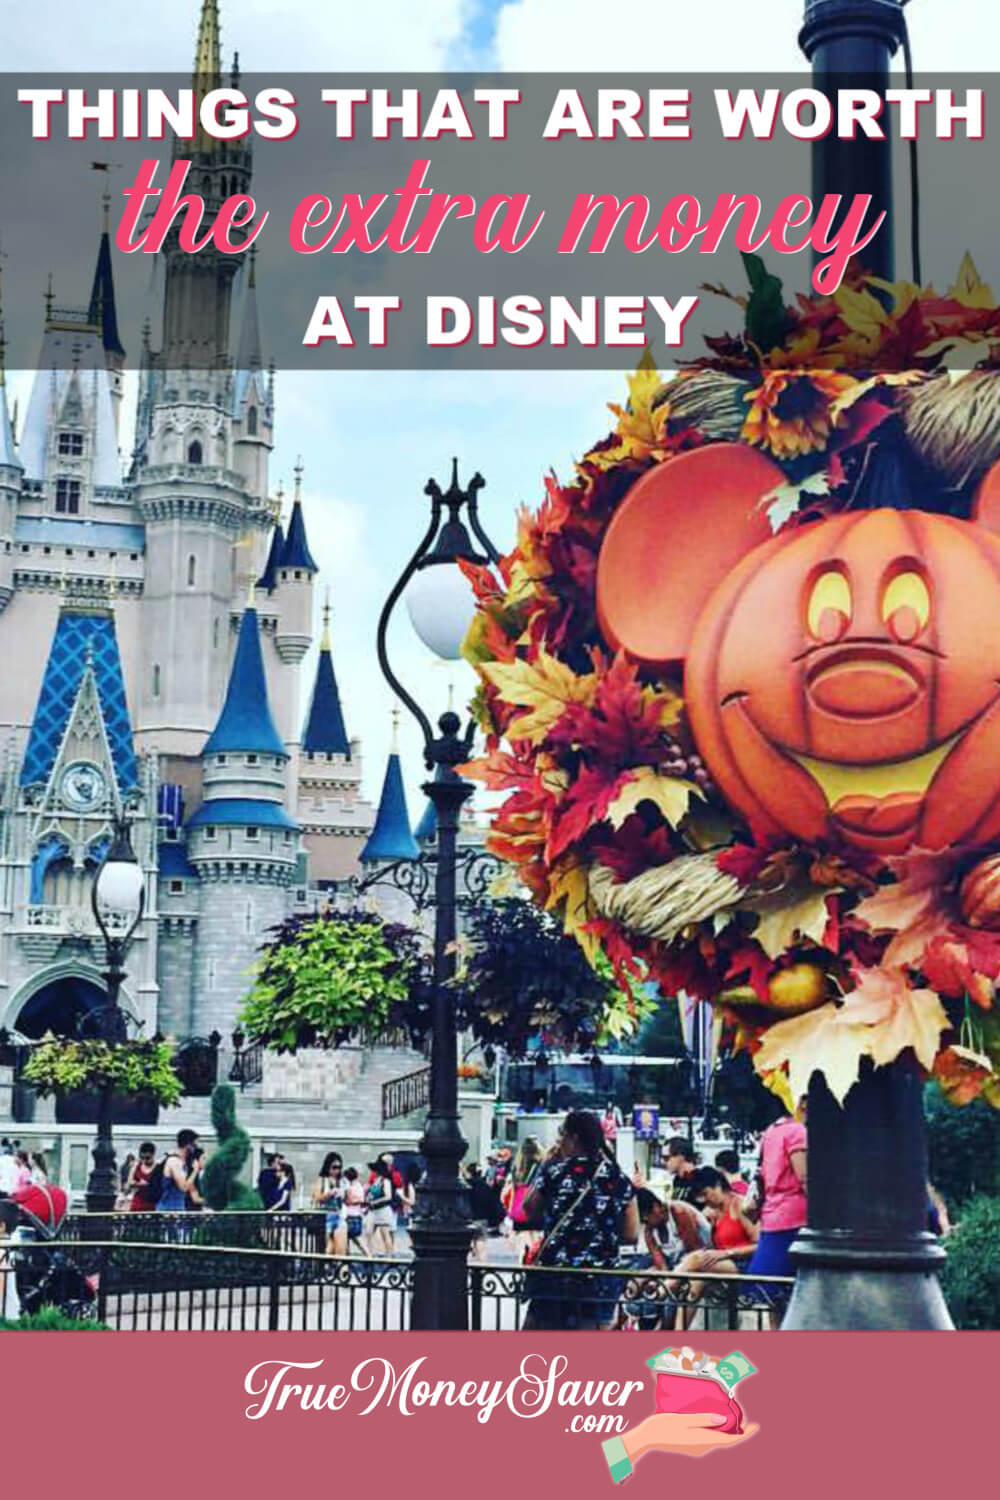 Disney can be expensive and I\'m always finding ways to save money there. But some things are worth the splurge to enjoy the Disney Magic! #truemoneysaver #disneyworld #disney #vacation #familyvacation